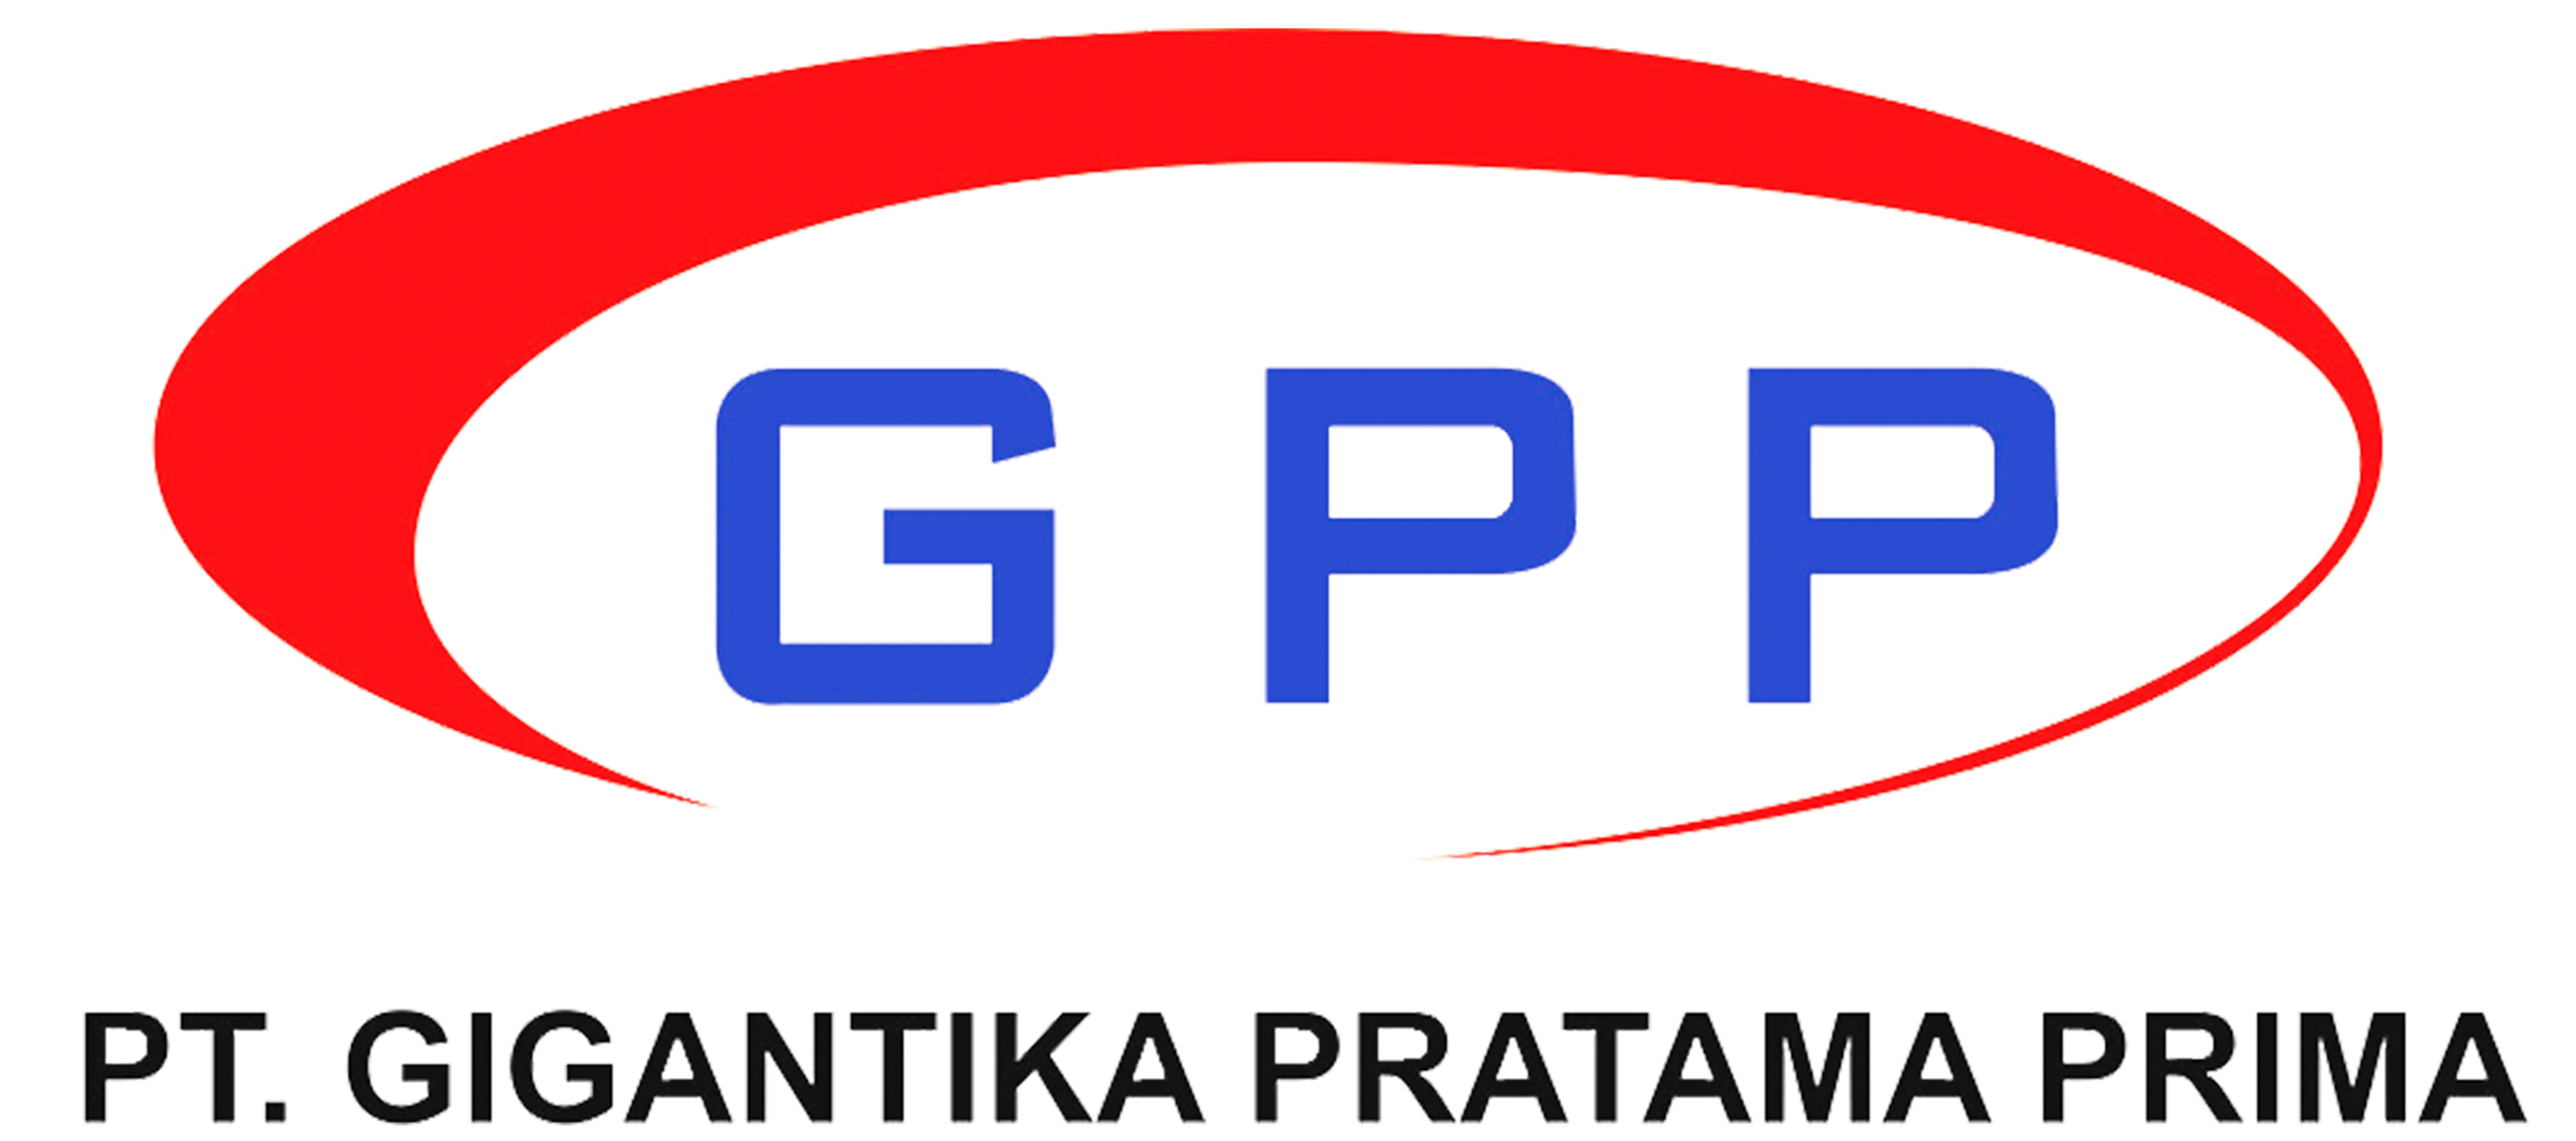 PT. GIGANTIKA PRATAMA PRIMA - Sole Distributor IT & Industrial Networking